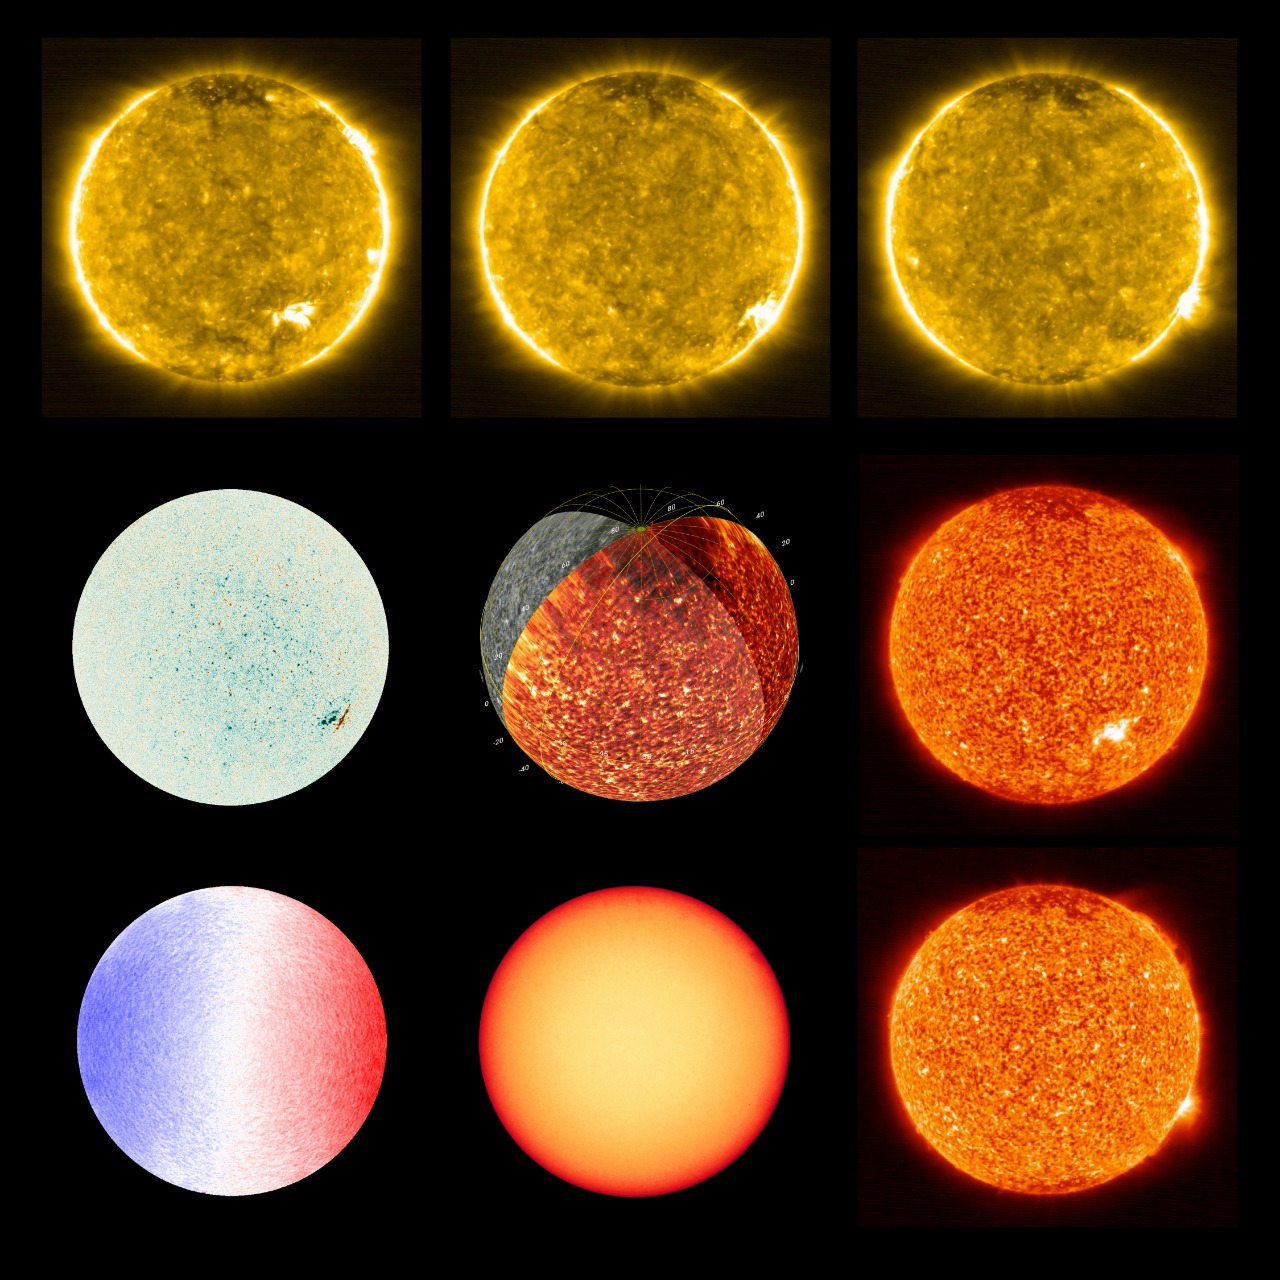 Spacecraft snaps closest images of sun